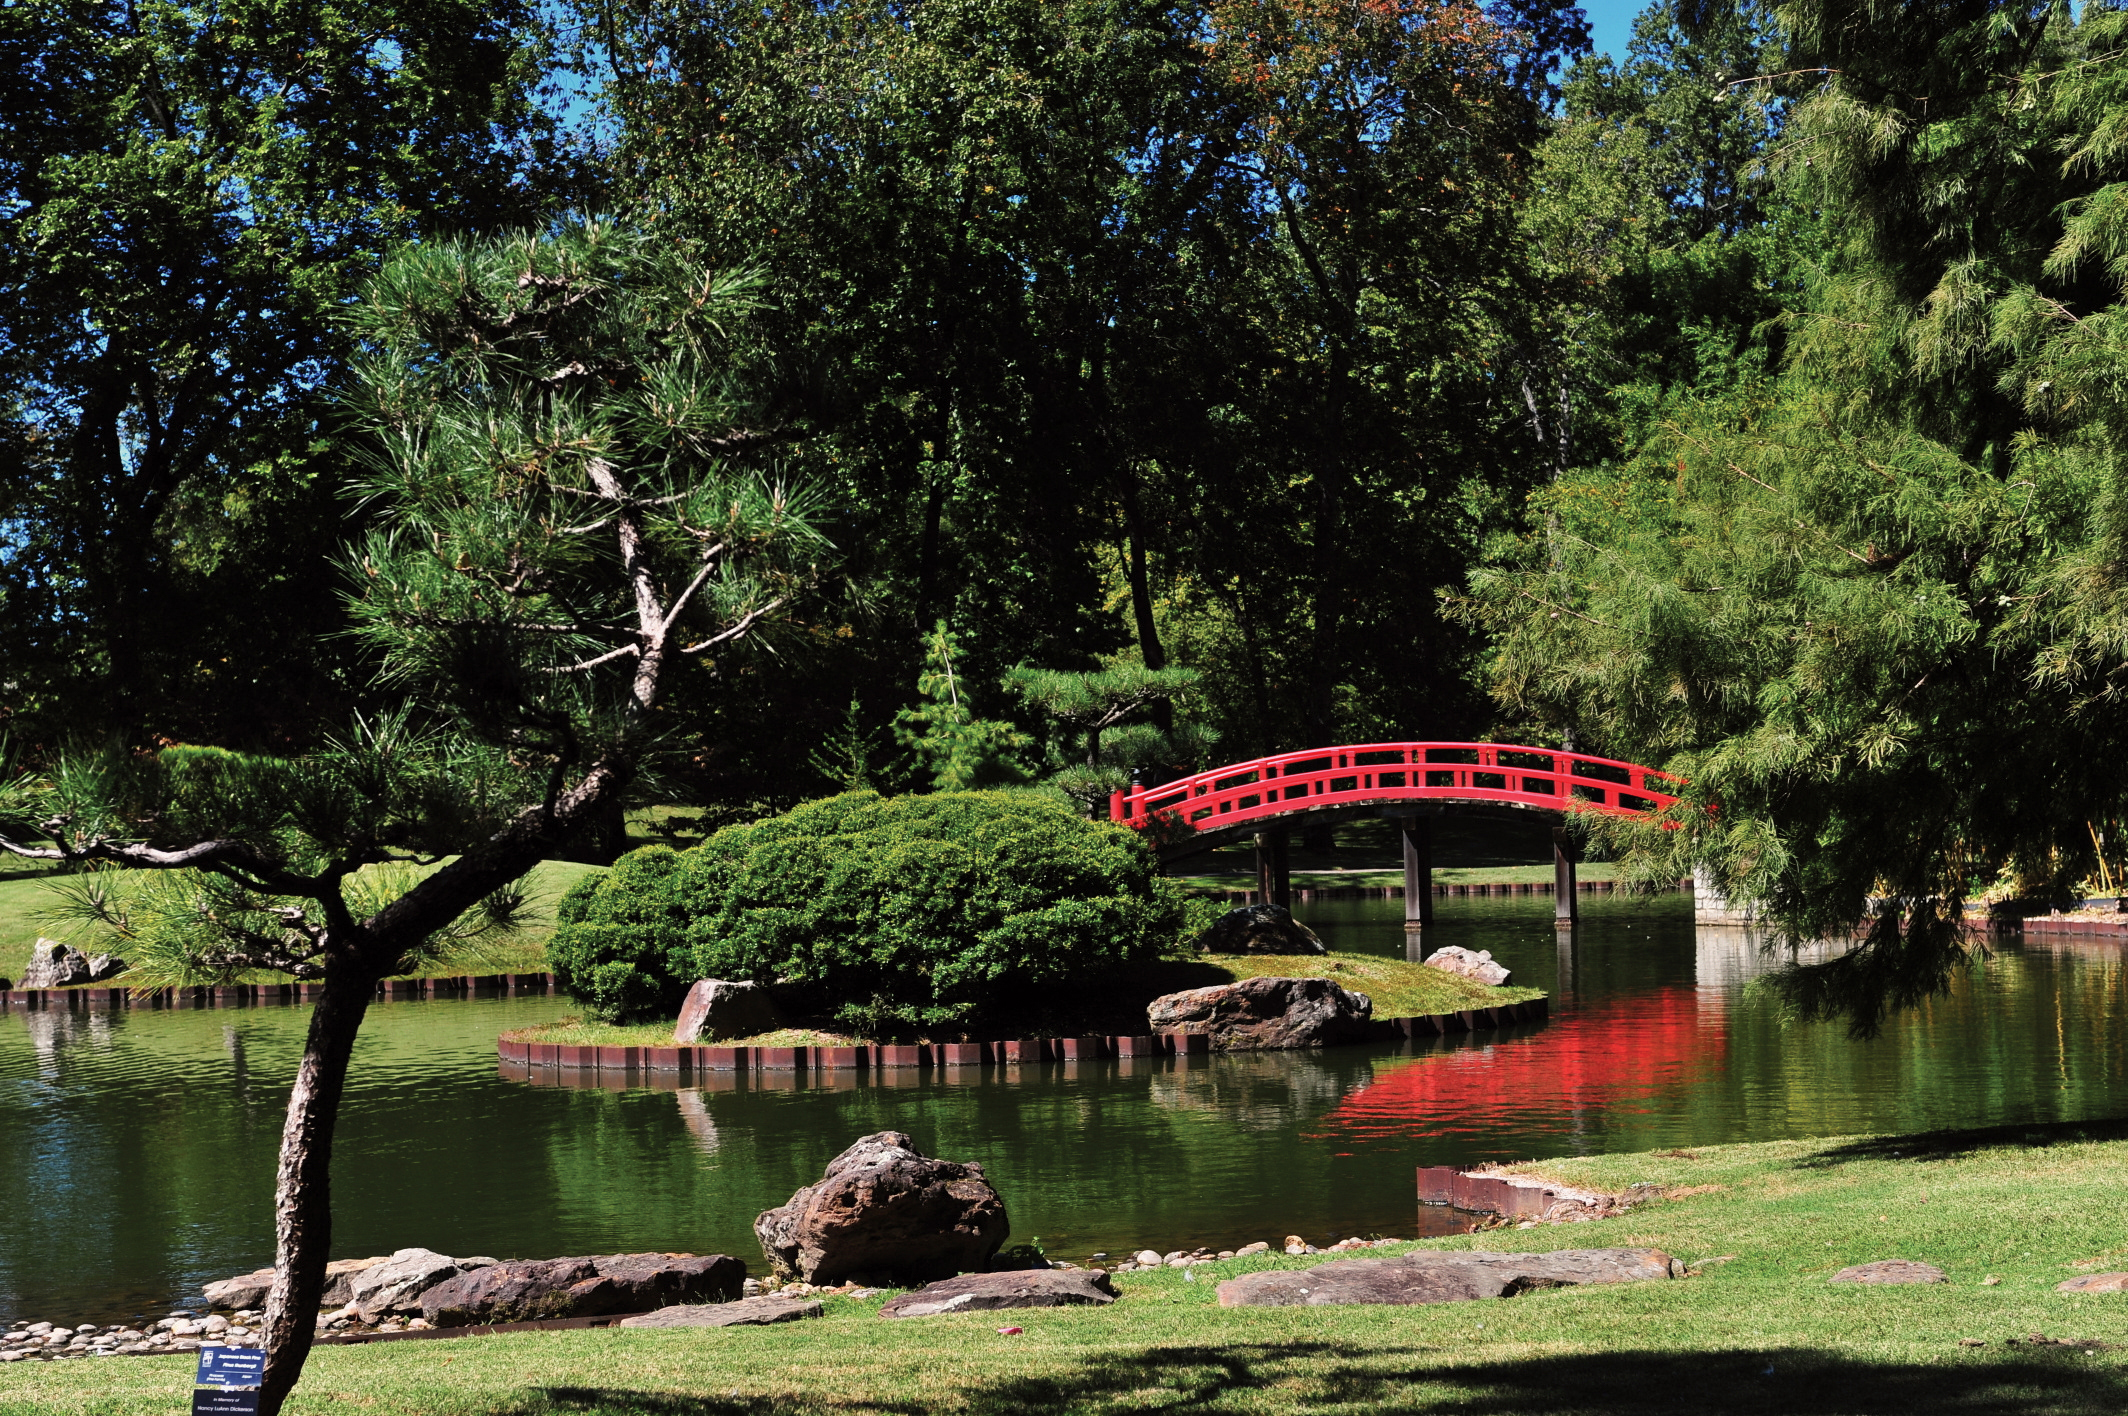 Visit the Memphis Botanic Garden For Over 90 Acres of Activities!